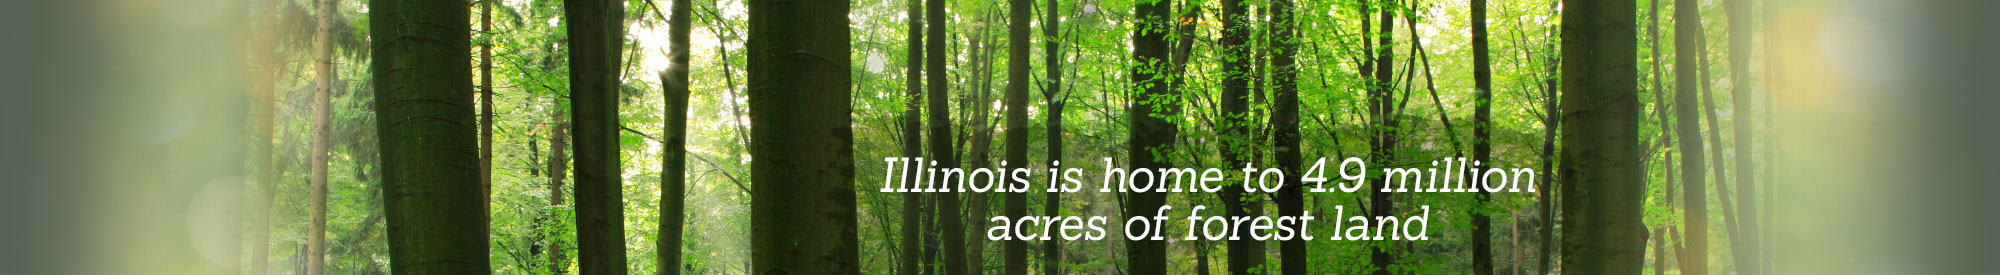 Illinois is home to 4.9 million acres of forest land.